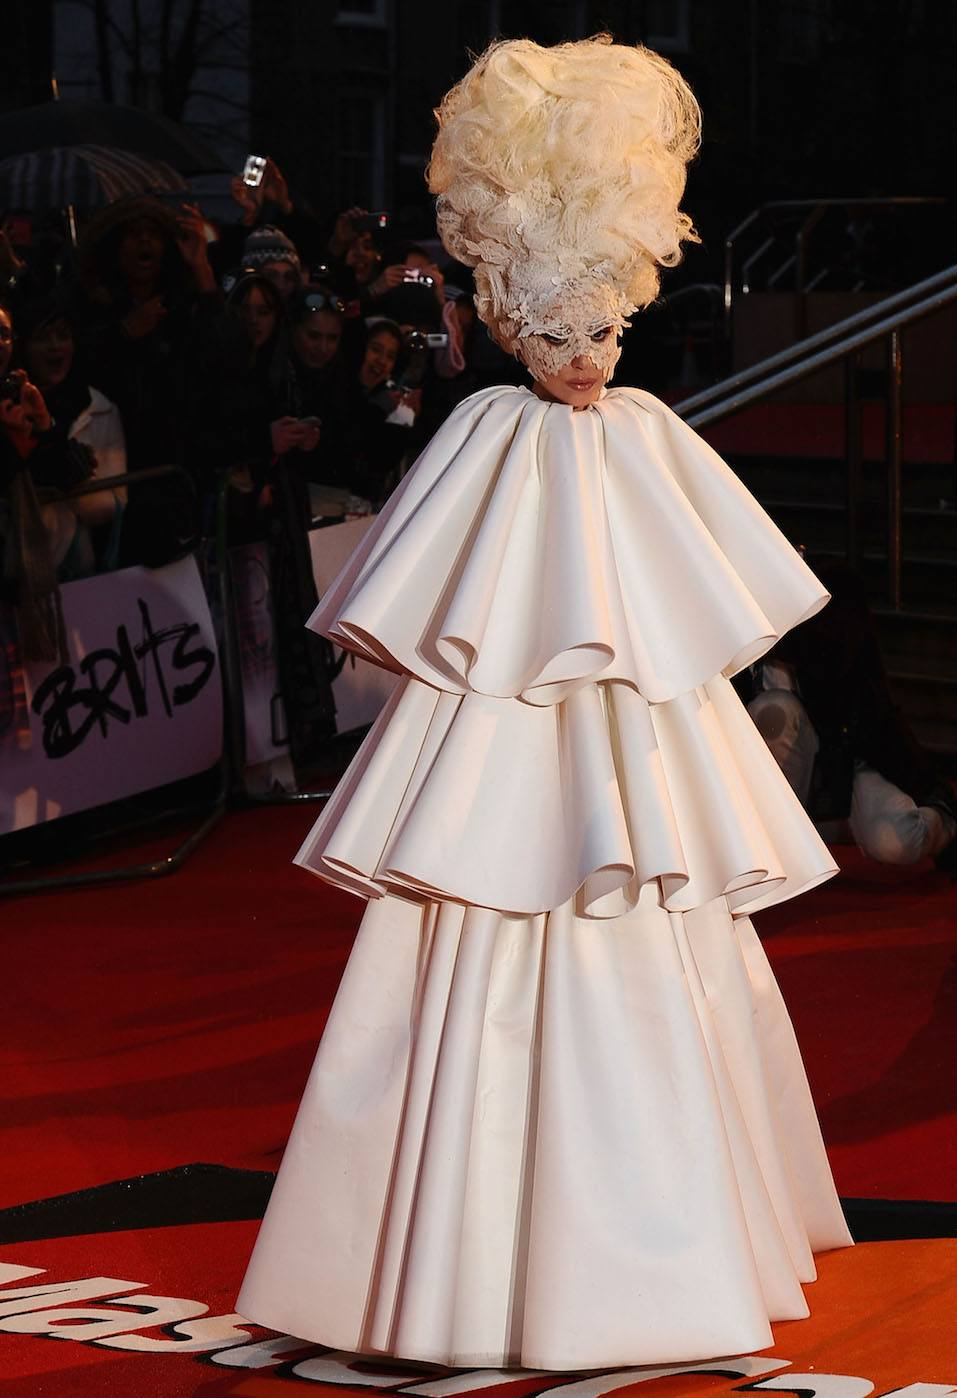 Lady Gaga arrives on the red carpet for The Brit Awards 2010 at Earls Court